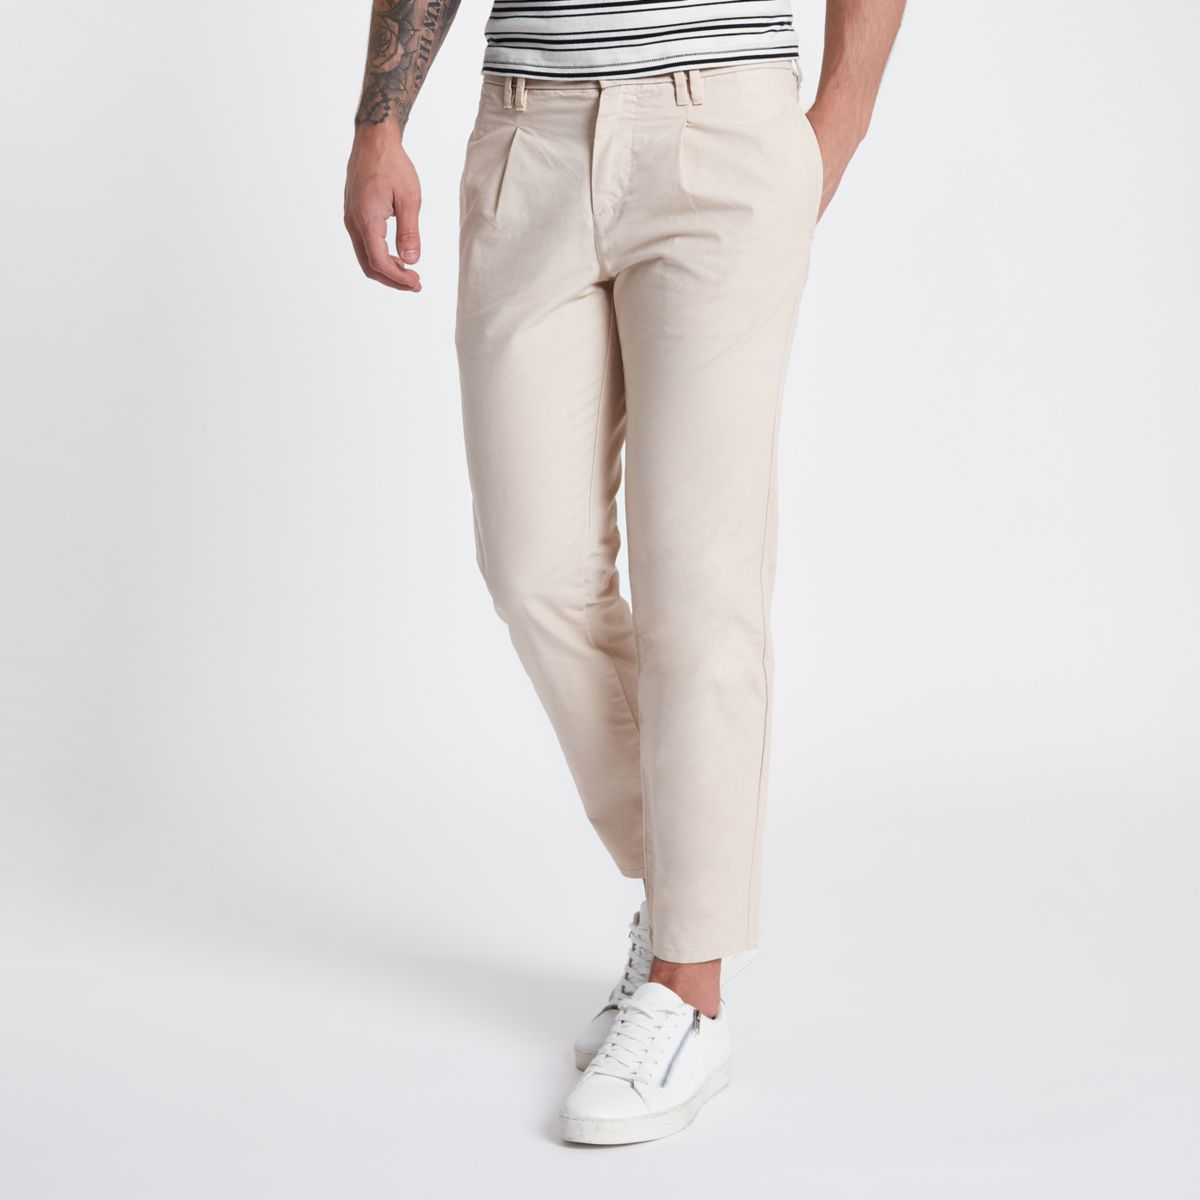 Stone tapered chino pants